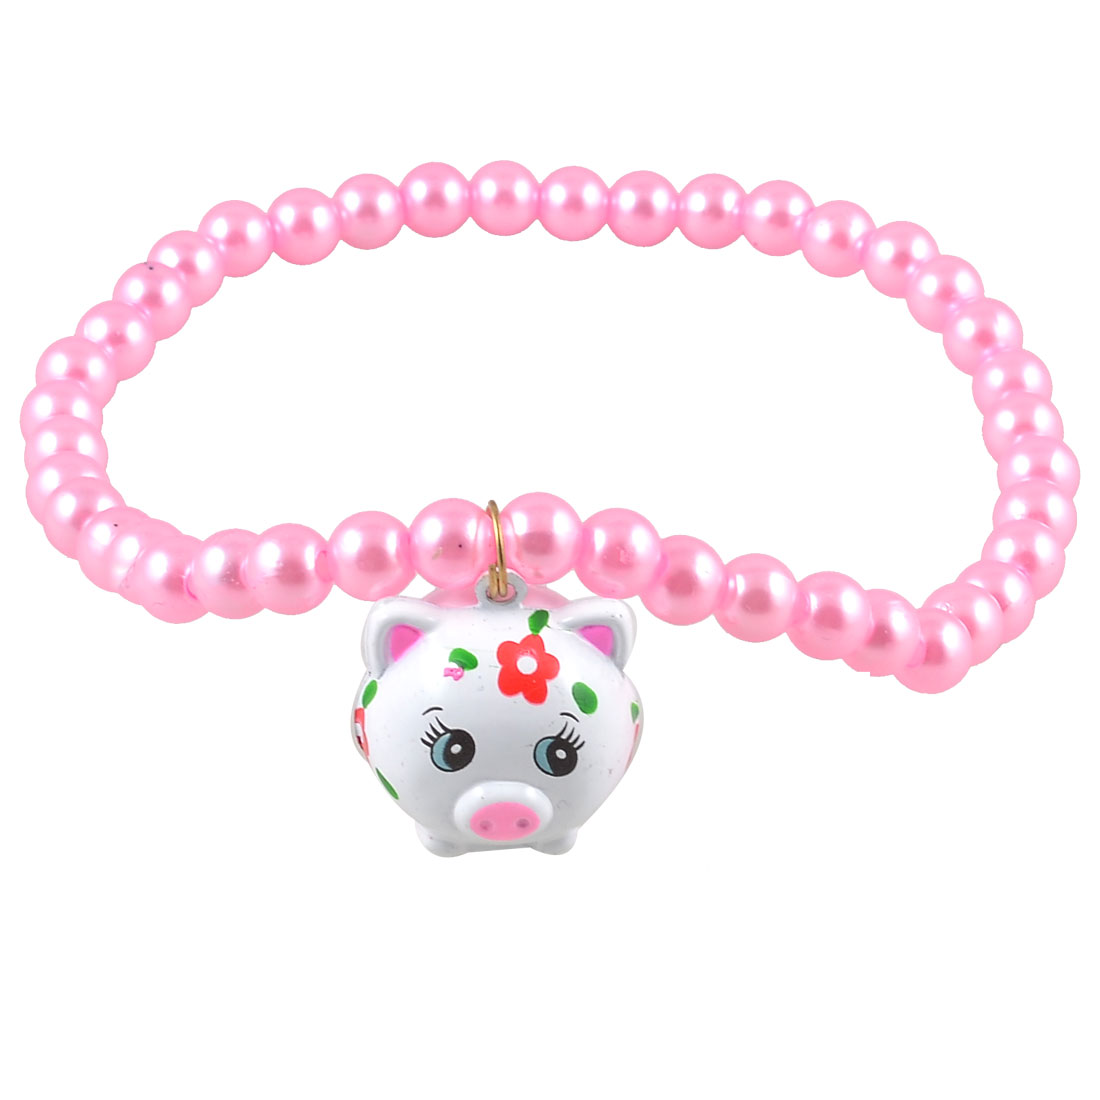 Pink Imitation Pearl White Metal Pig Shape Jingle Bell Pendant Pet Dog Cat Necklace